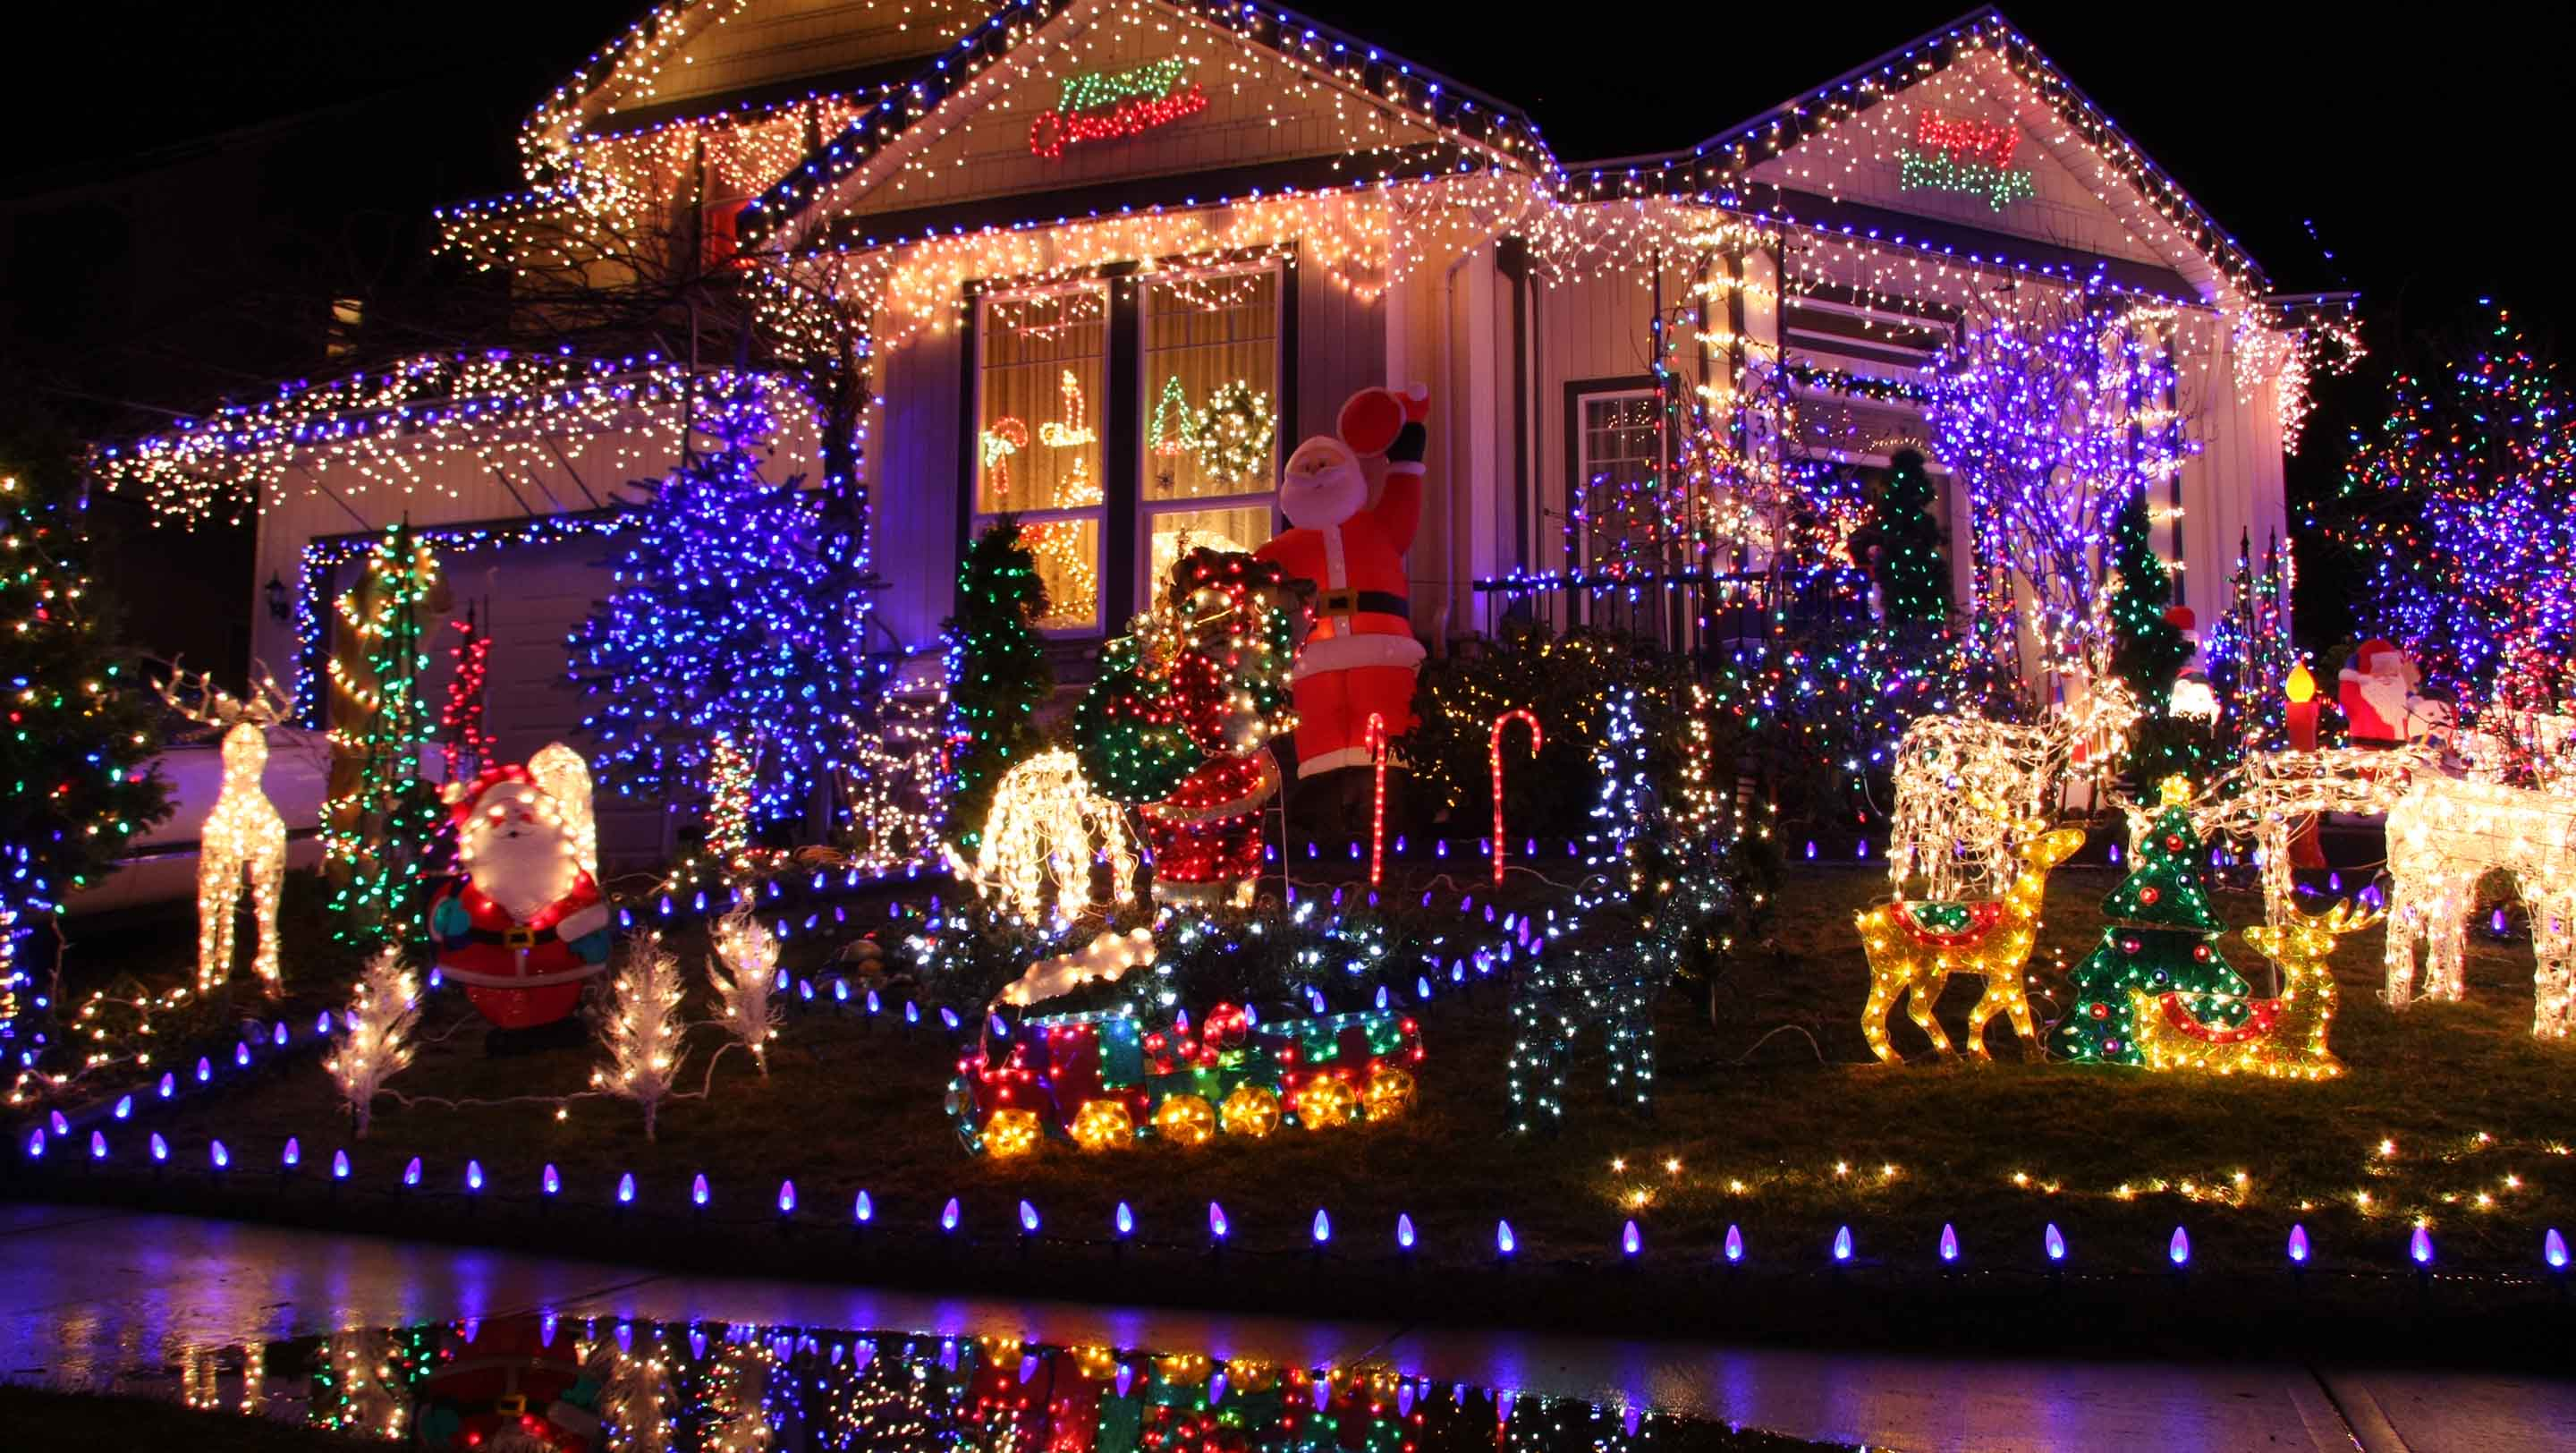 House With Christmas Lights.The Brailsford Family Christmas Lights Homeprotect